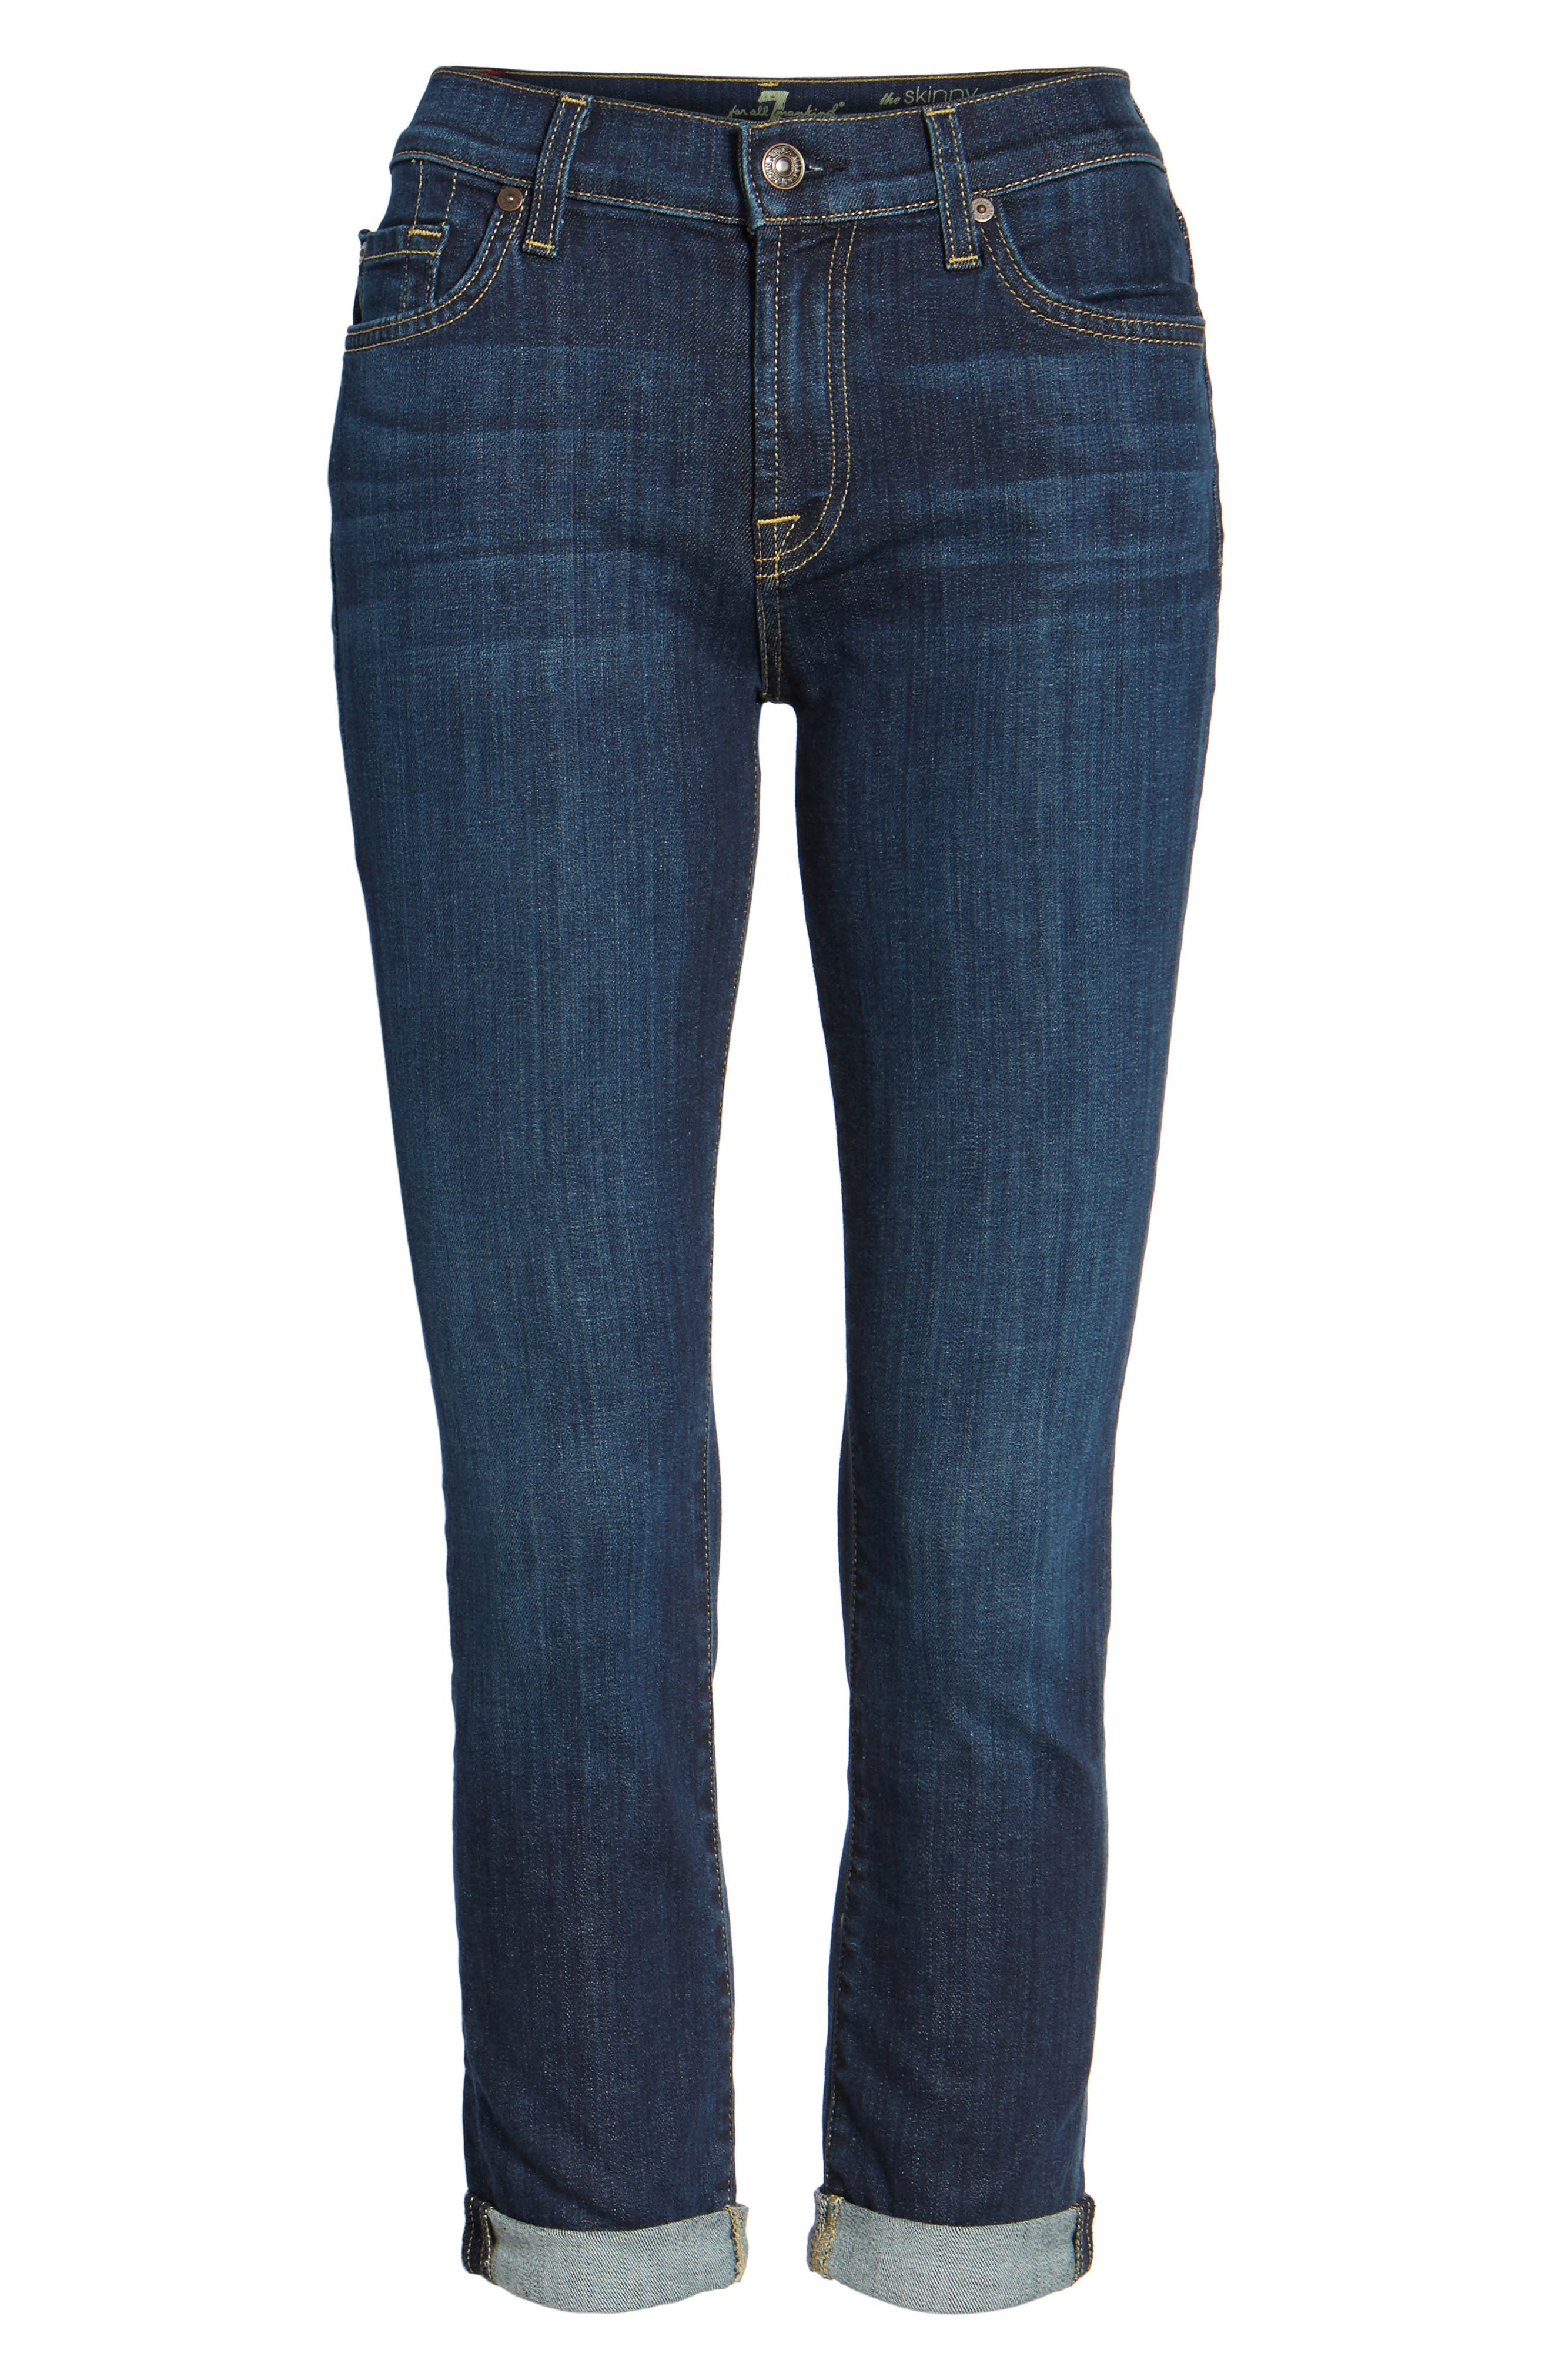 7 FOR ALL MANKIND<SUP>®</SUP>, Crop Skinny Jeans, Alternate thumbnail 2, color, 400